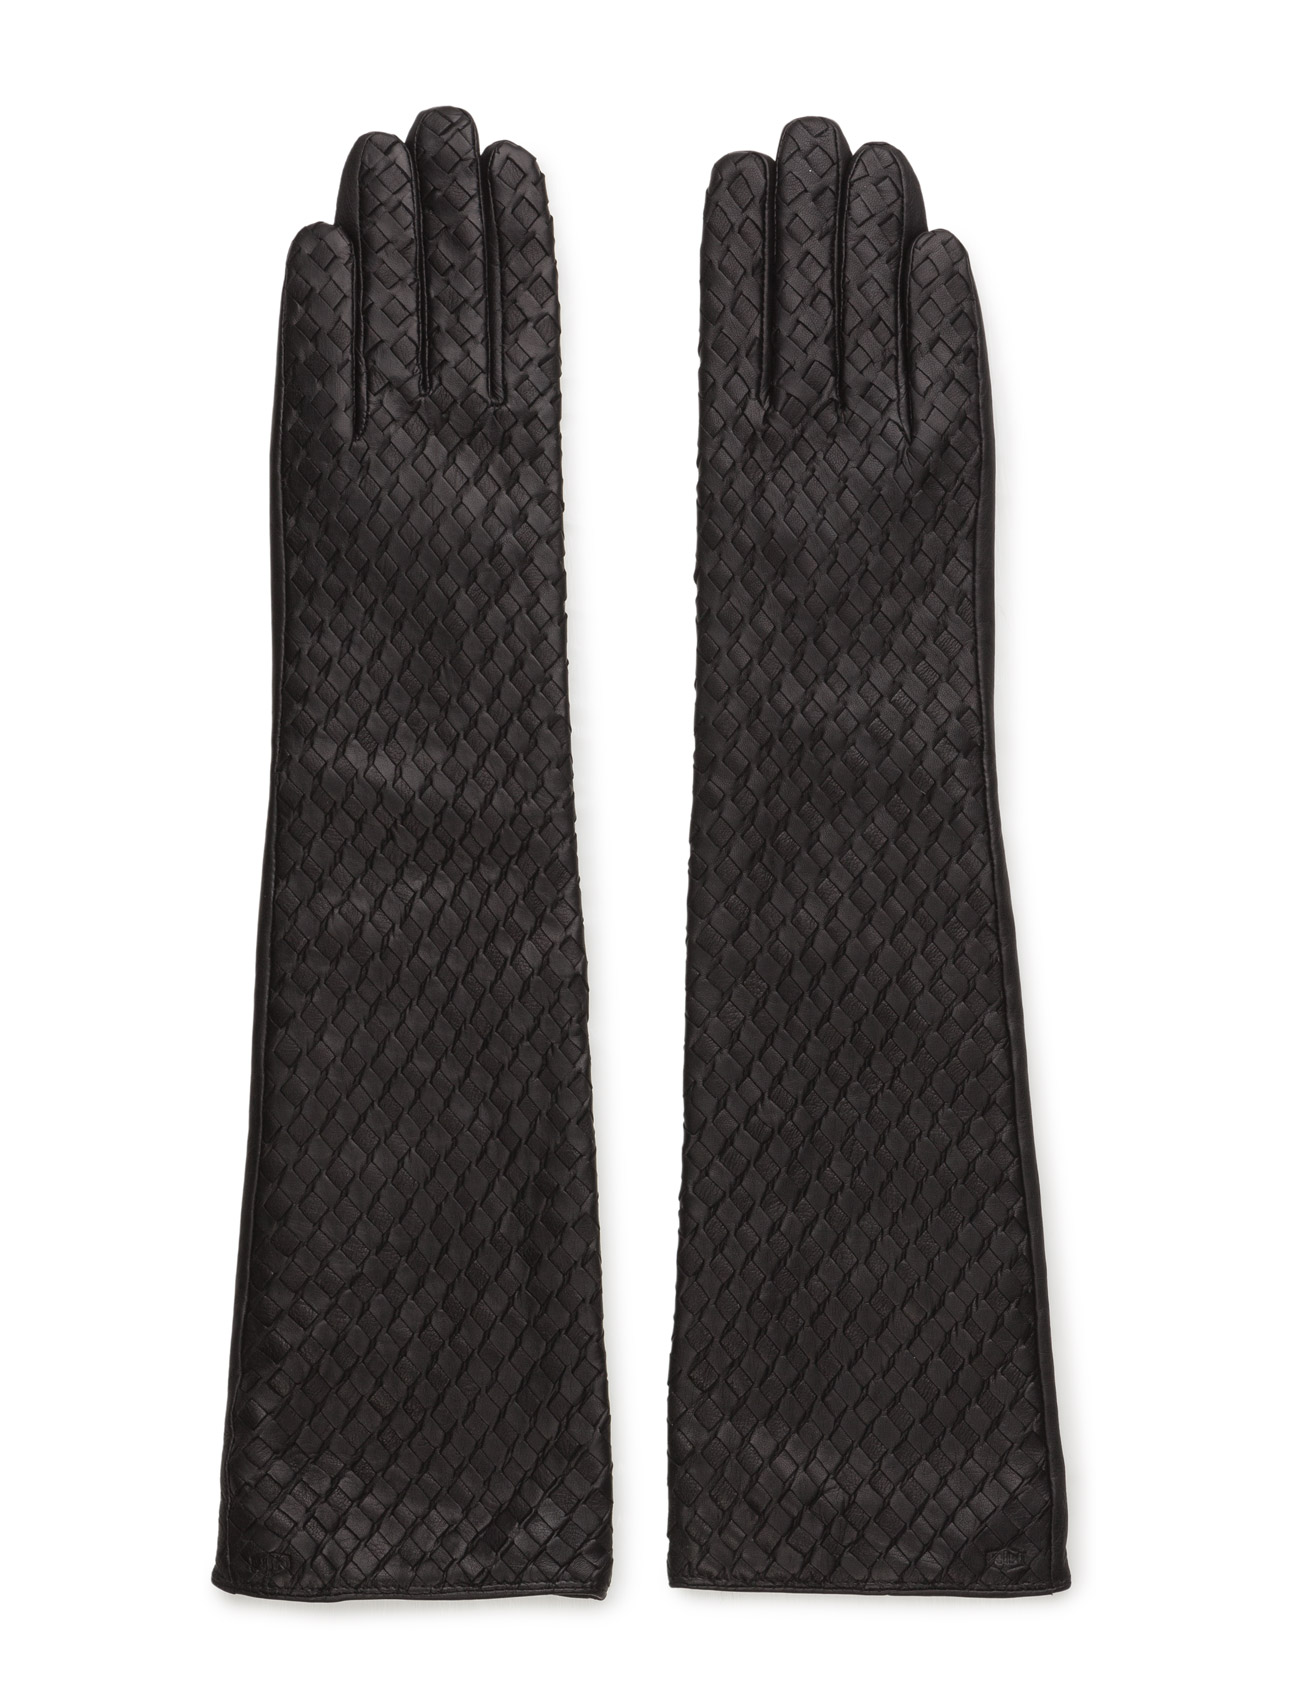 Mjm Glove Sophi Long Leather Black MJM Handsker til Kvinder i Sort